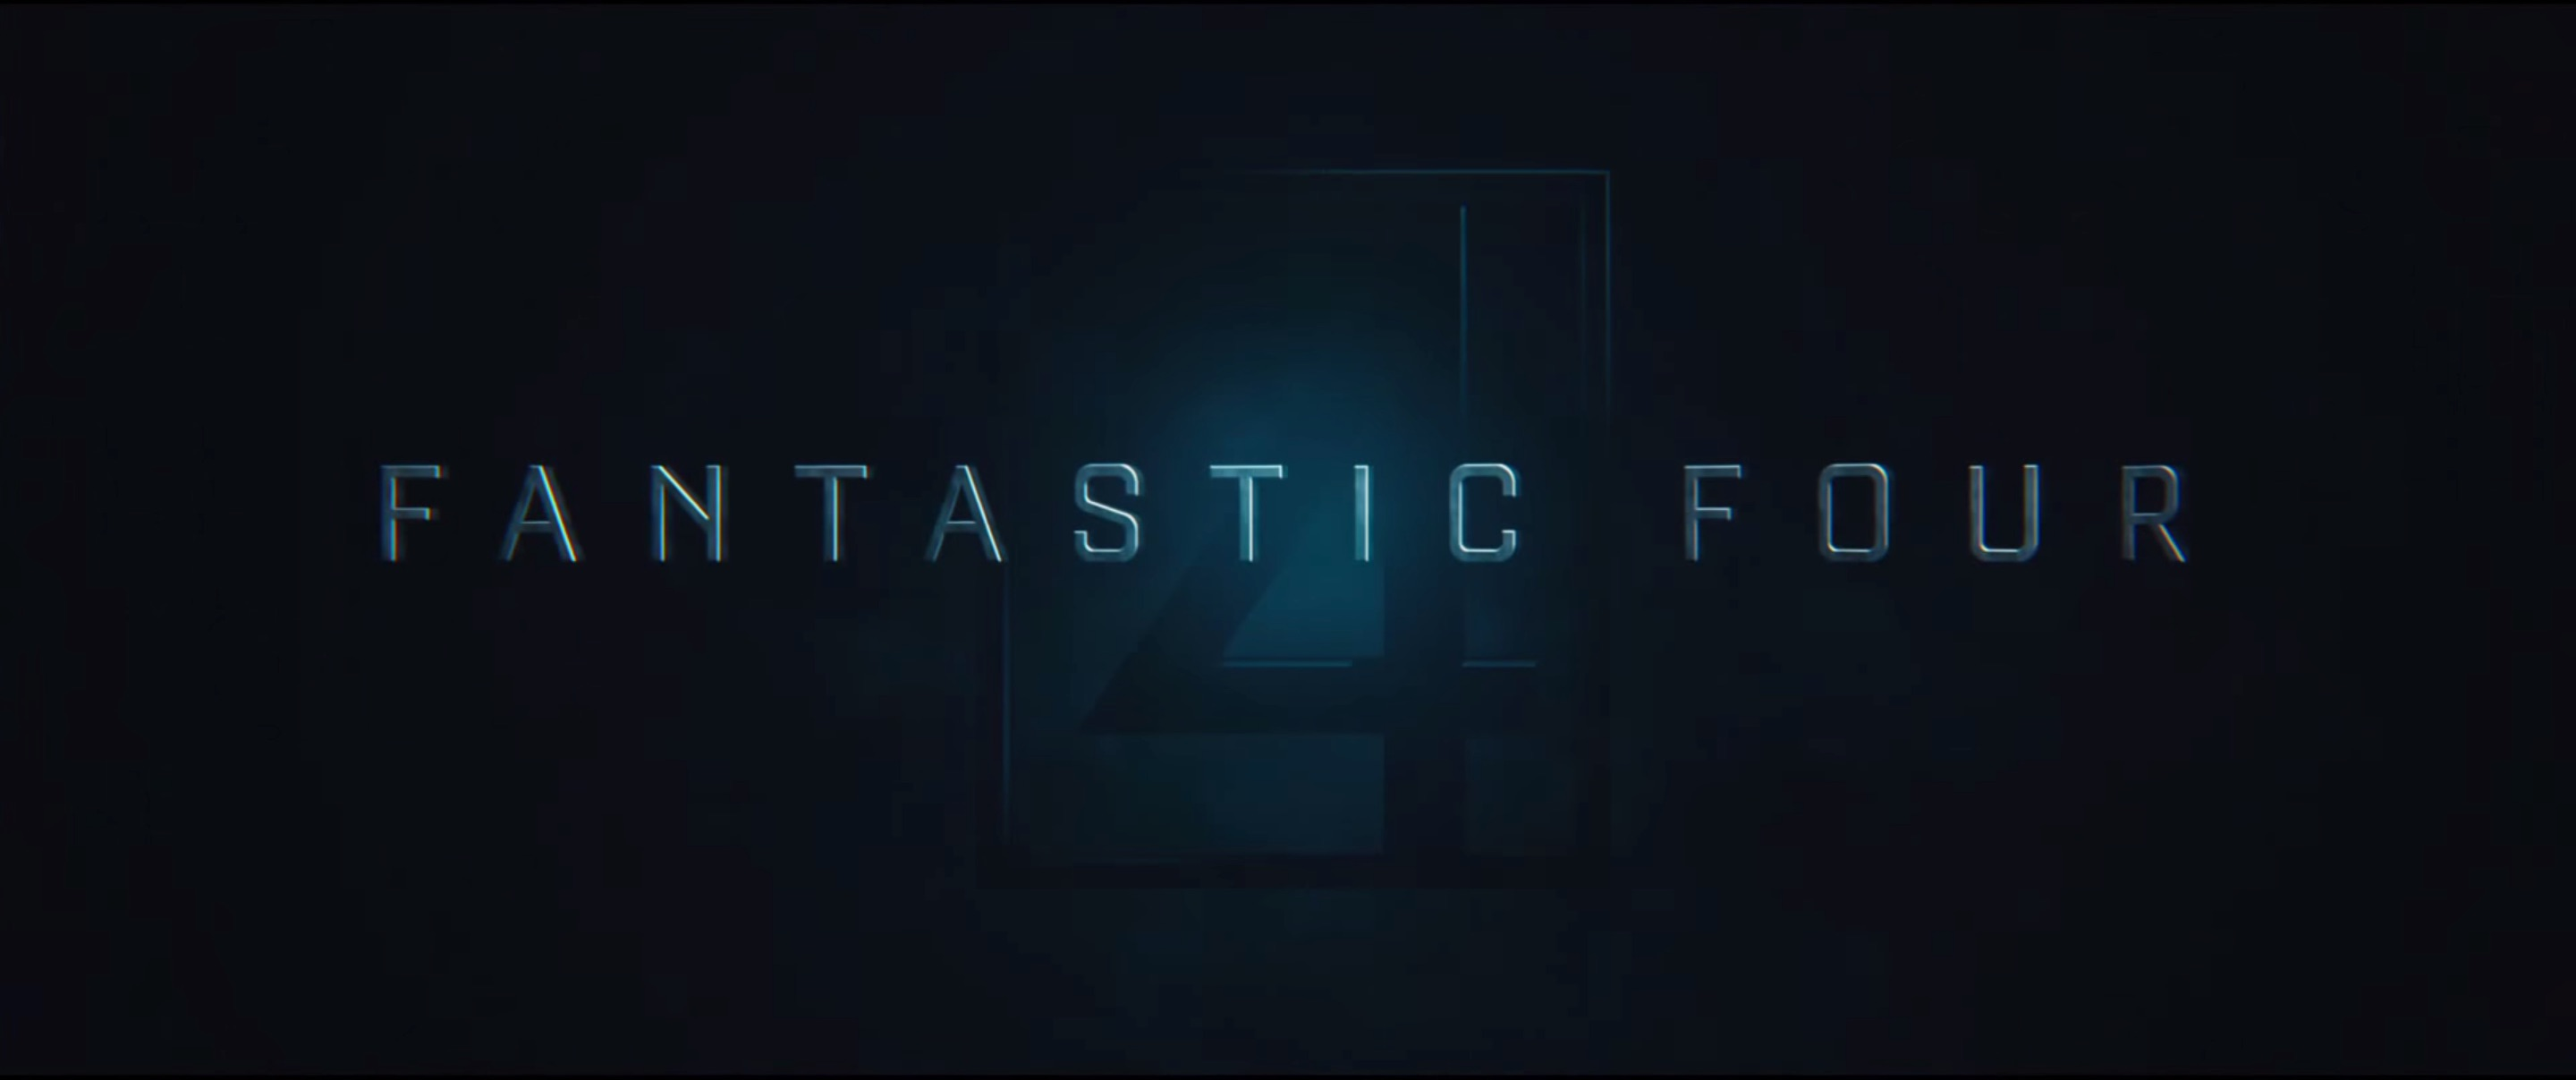 Fantastic four 2015 movie hd wallpapers for Home 2015 wallpaper hd